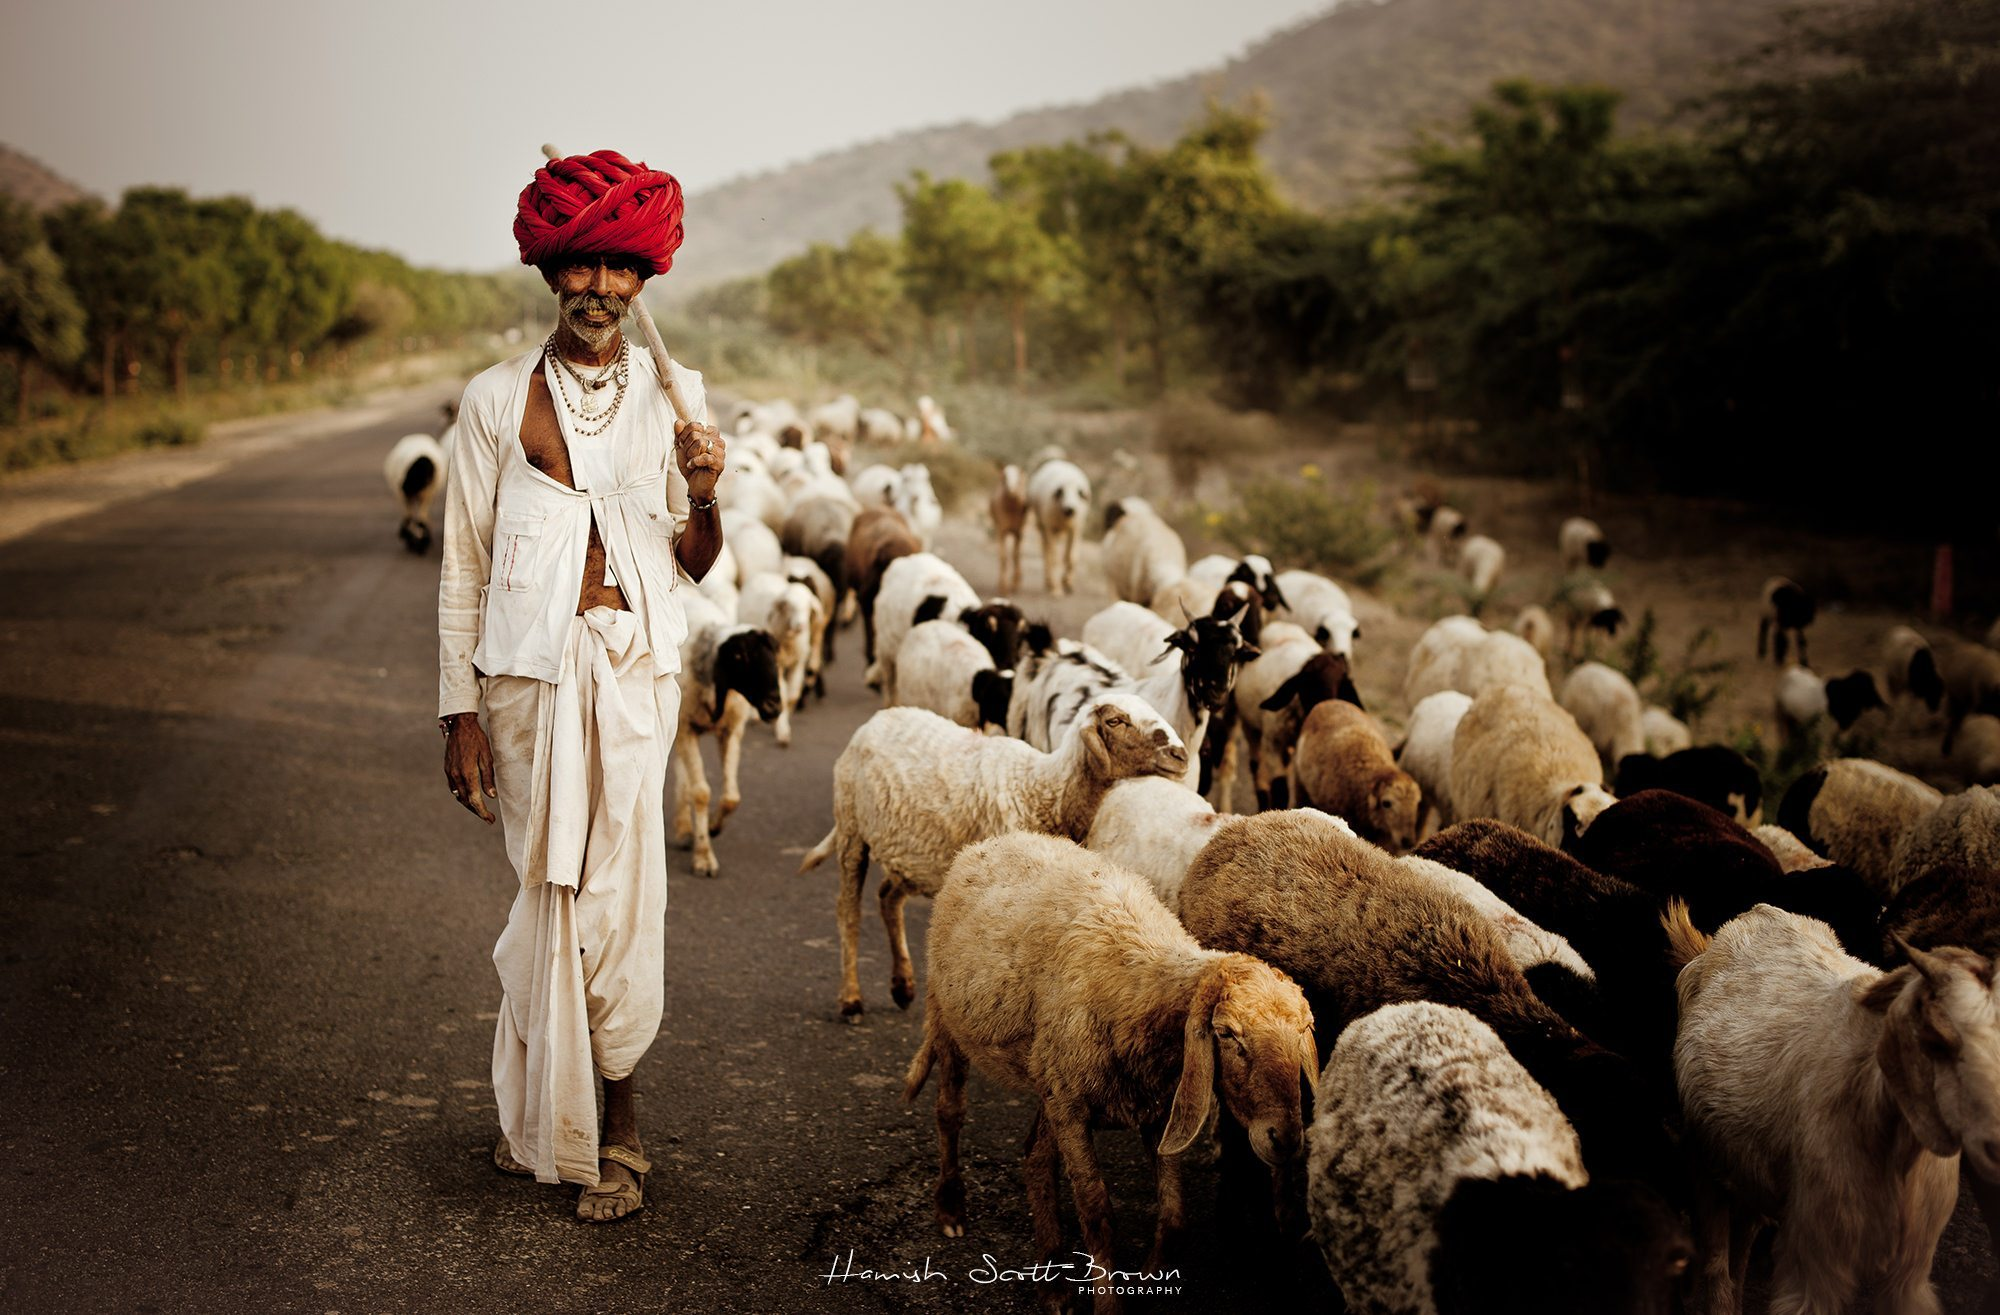 a farmer in rajasthan takes his flock home at sundown ©Hamish Scott-Brown